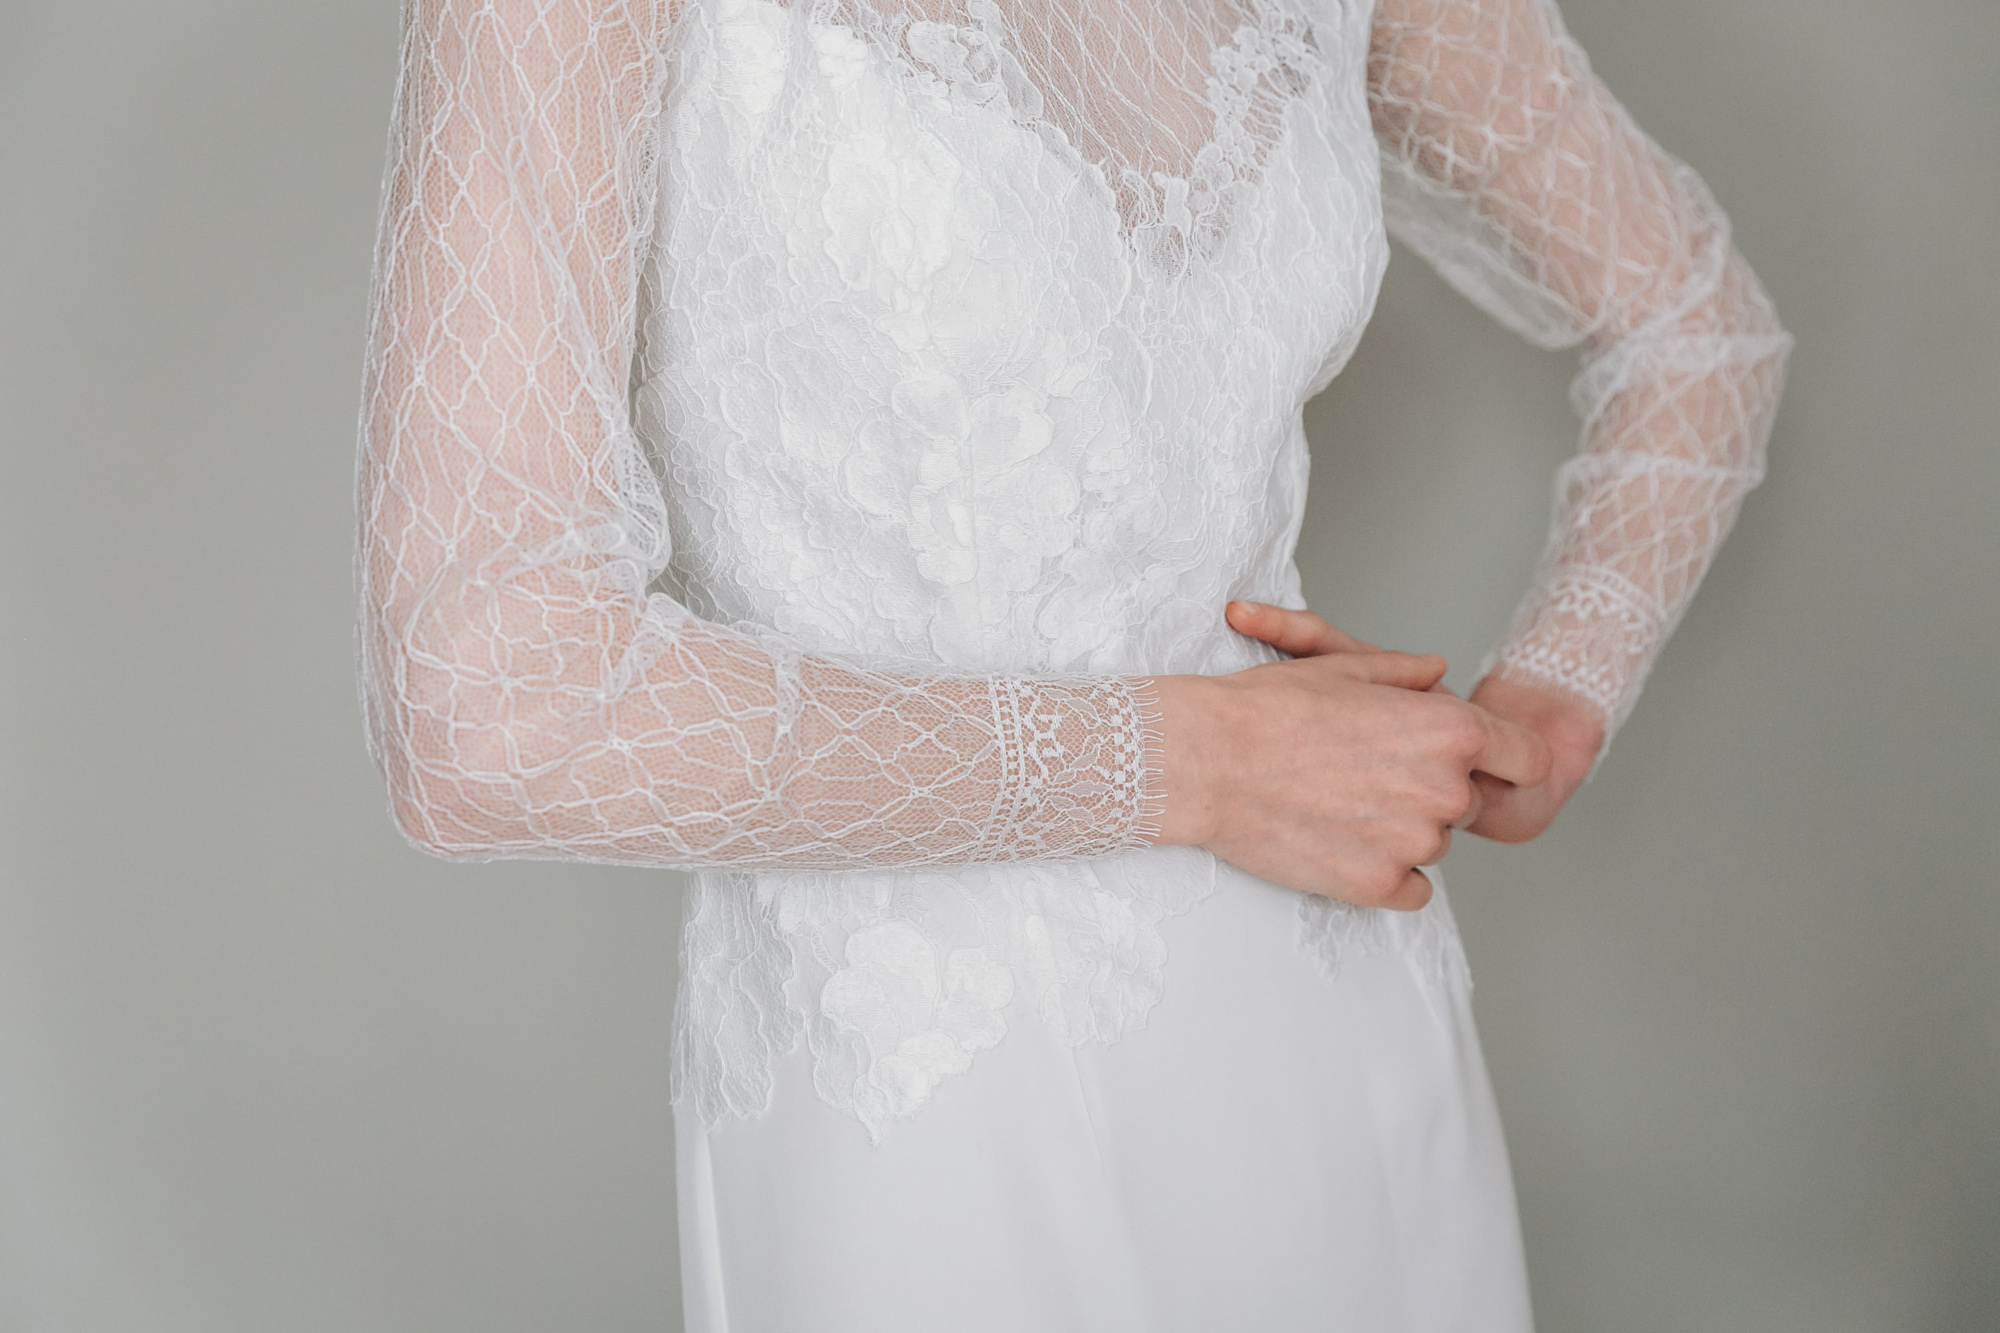 Kate-Beaumont-Sheffield-Geranium-Applique-Lace-Silk-Modern-Minimal-Long-Sleeved-Wedding-Gown-7.jpg